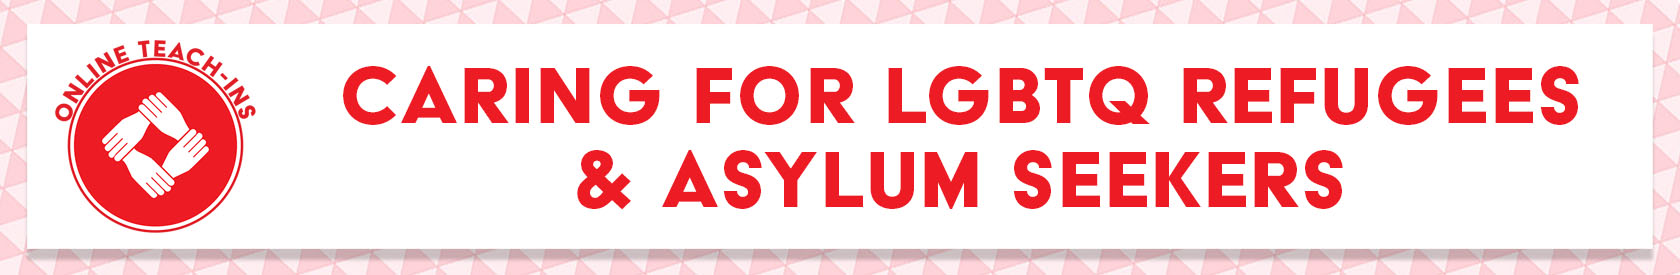 Caring for LGBTQ Refugees and Asylum Seekers, Part 3